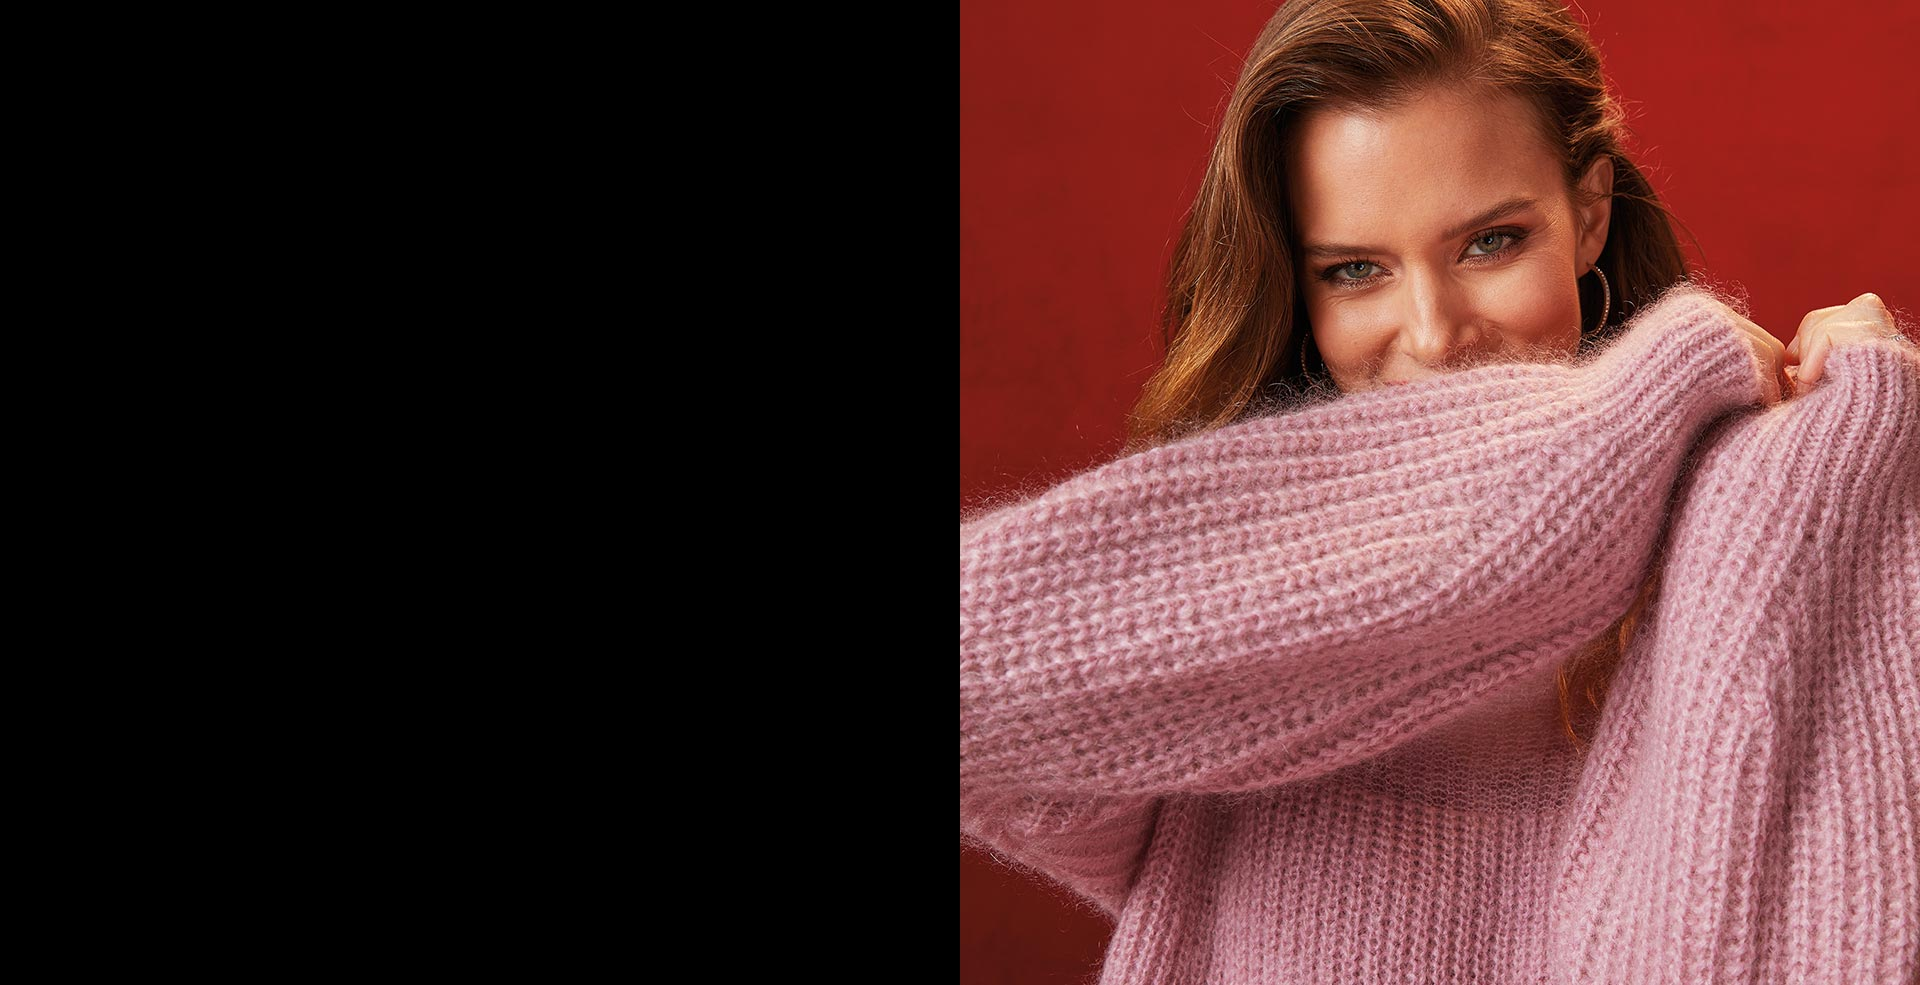 women smiling wearing a knitted sweater from RW & Co